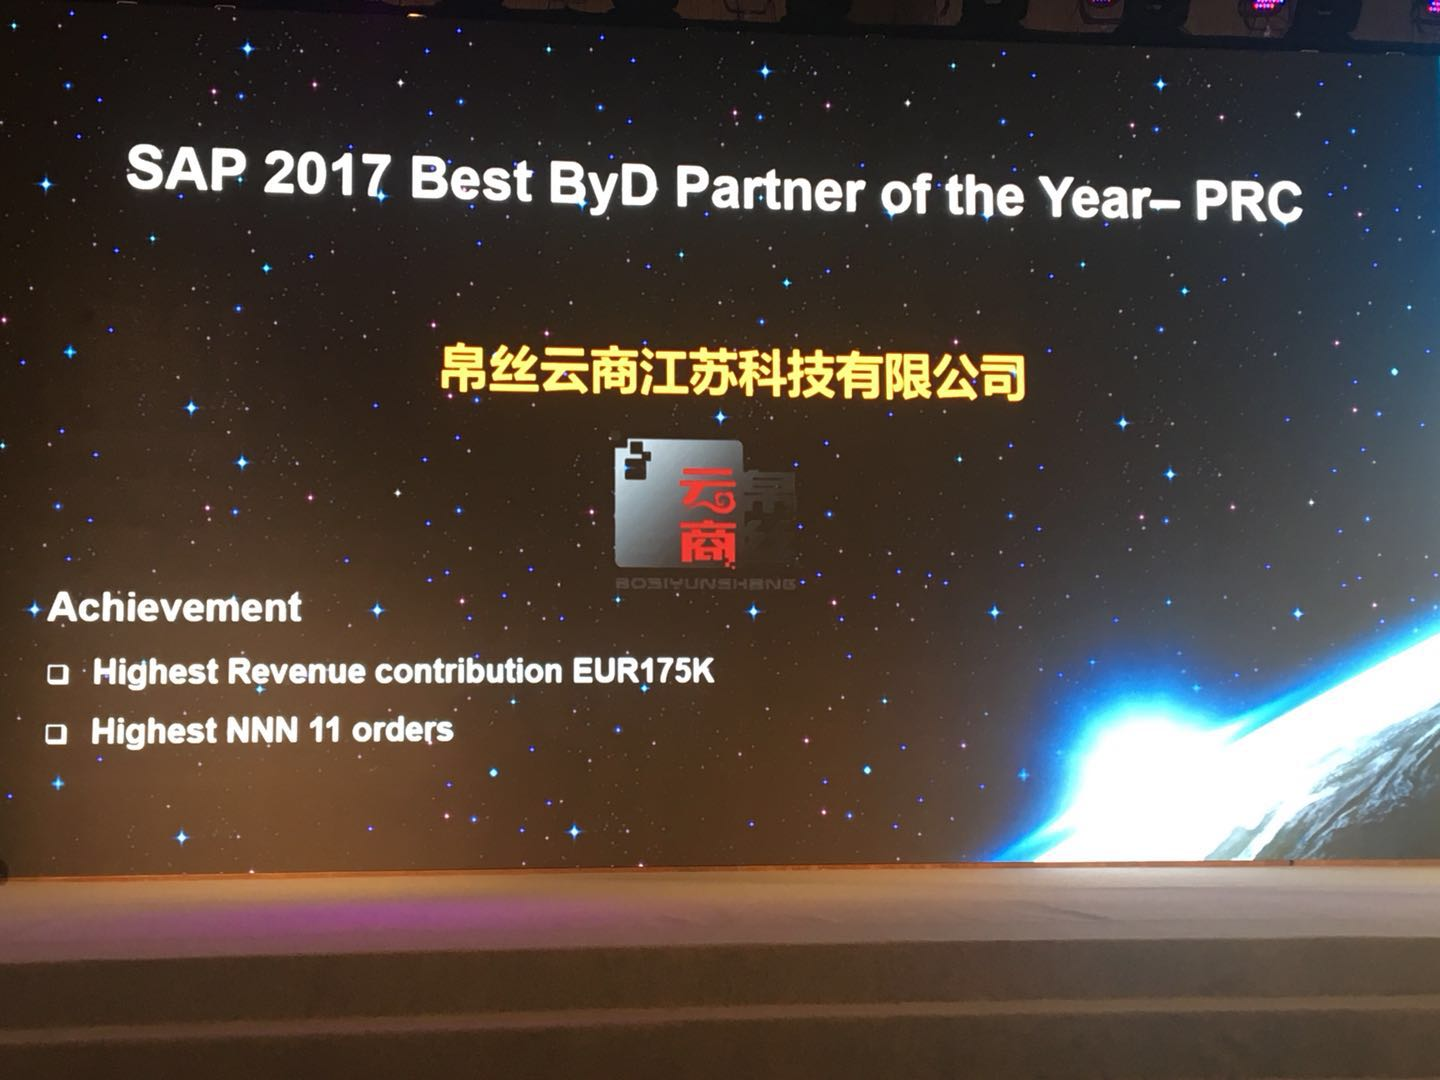 SAP 2017 Best ByD Partner of The Year - PRC